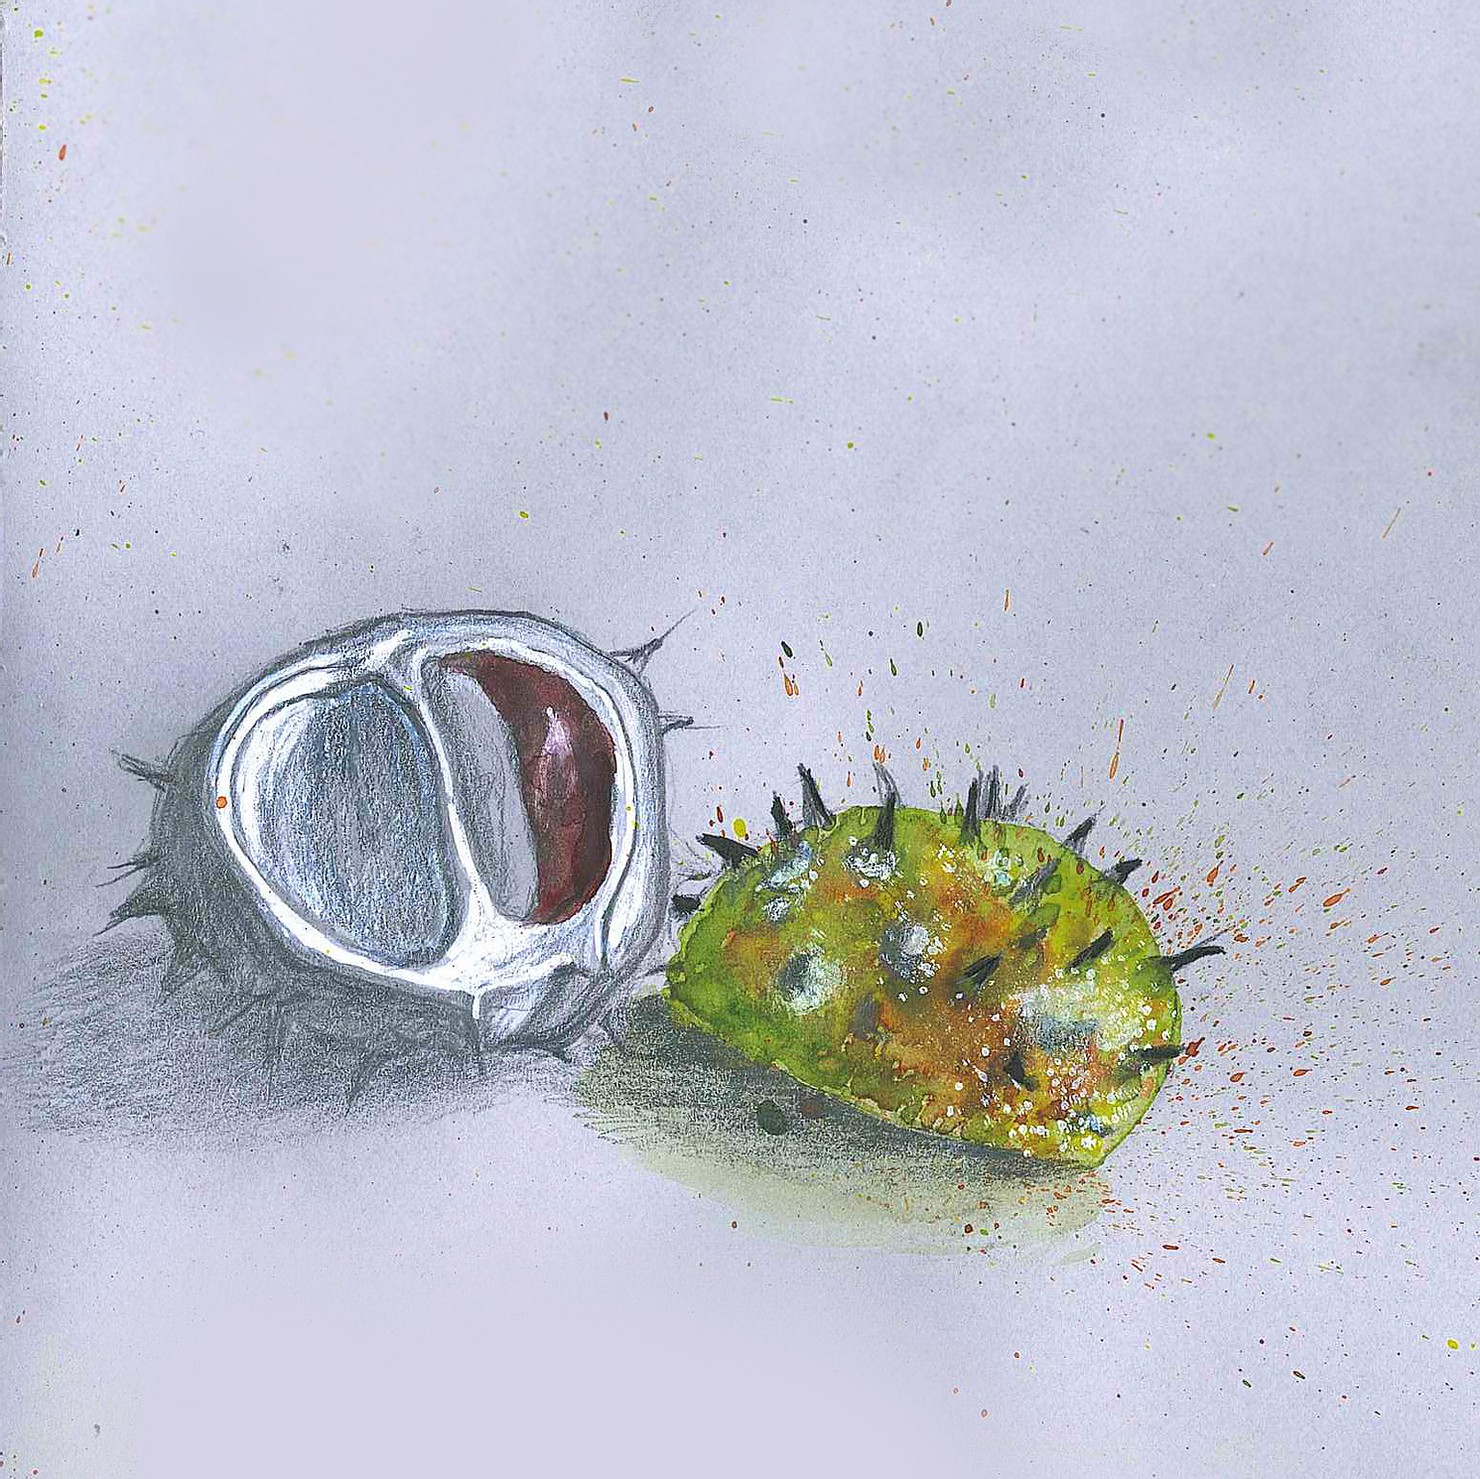 Image of a chestnut by Flavia Parone